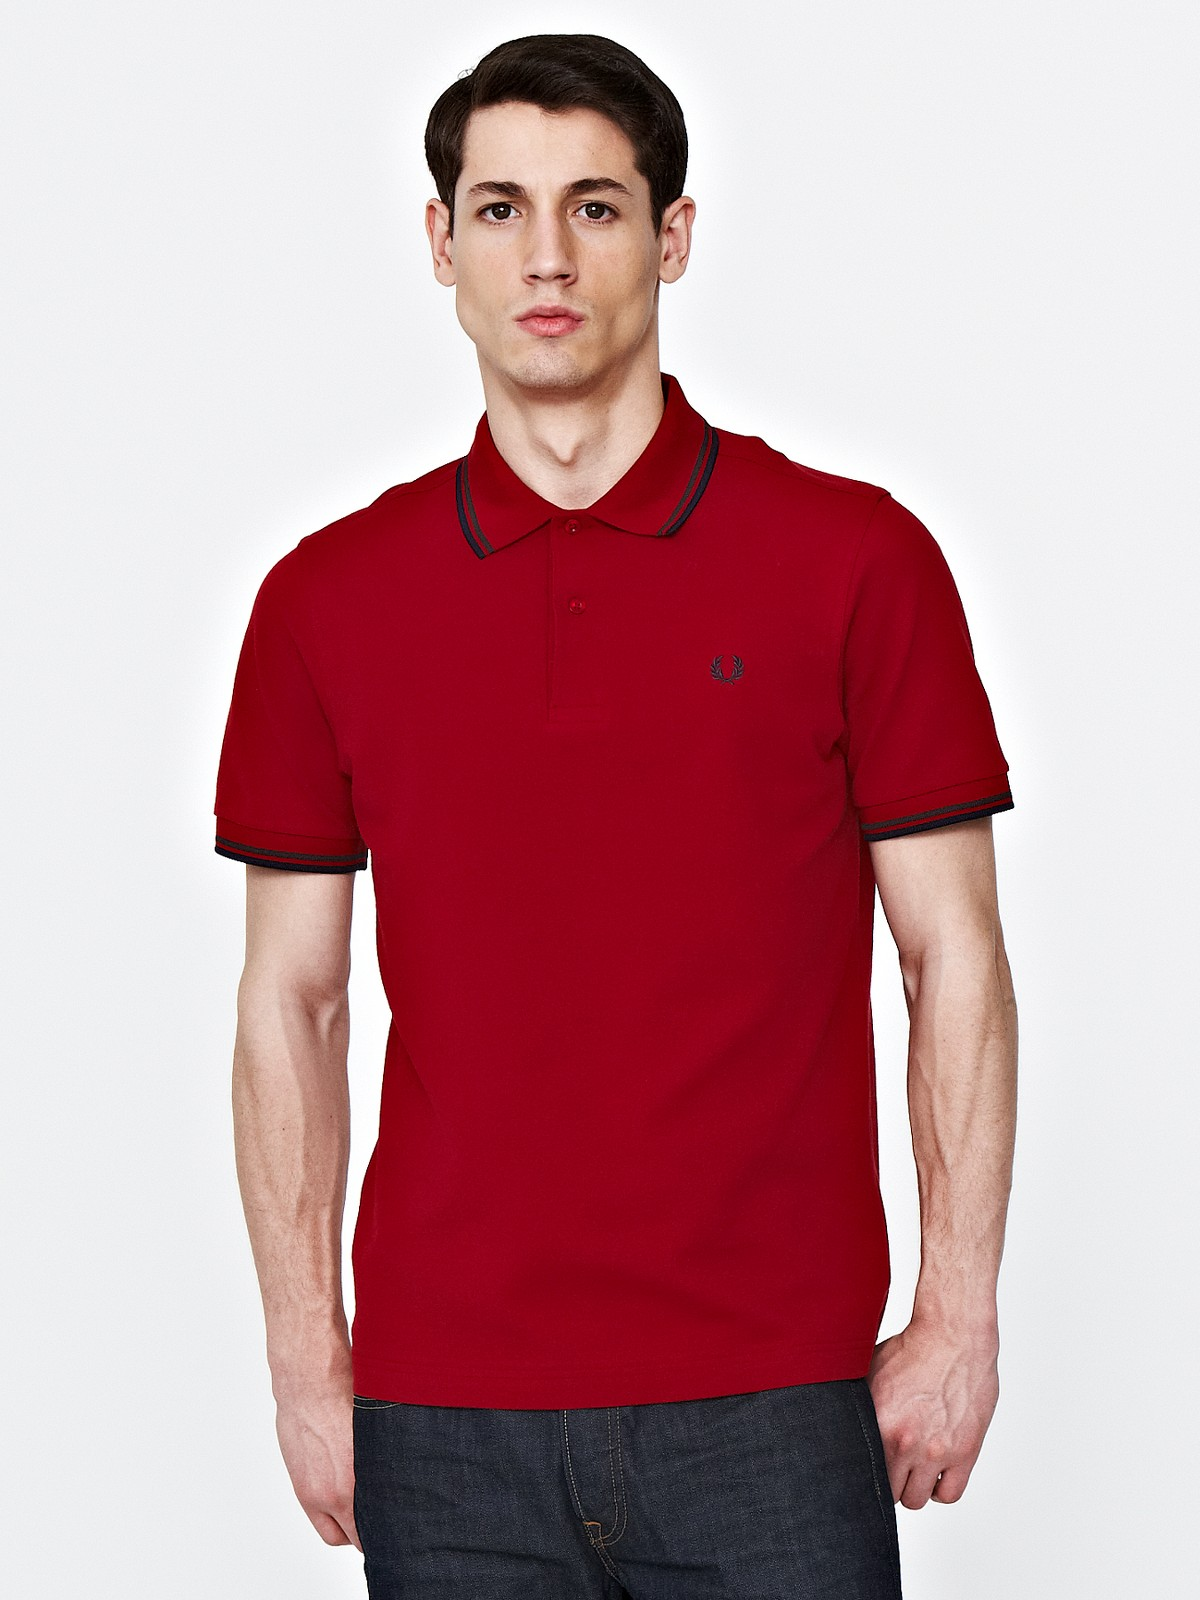 fred perry fred perry mens twin tipped polo in red for men lyst. Black Bedroom Furniture Sets. Home Design Ideas